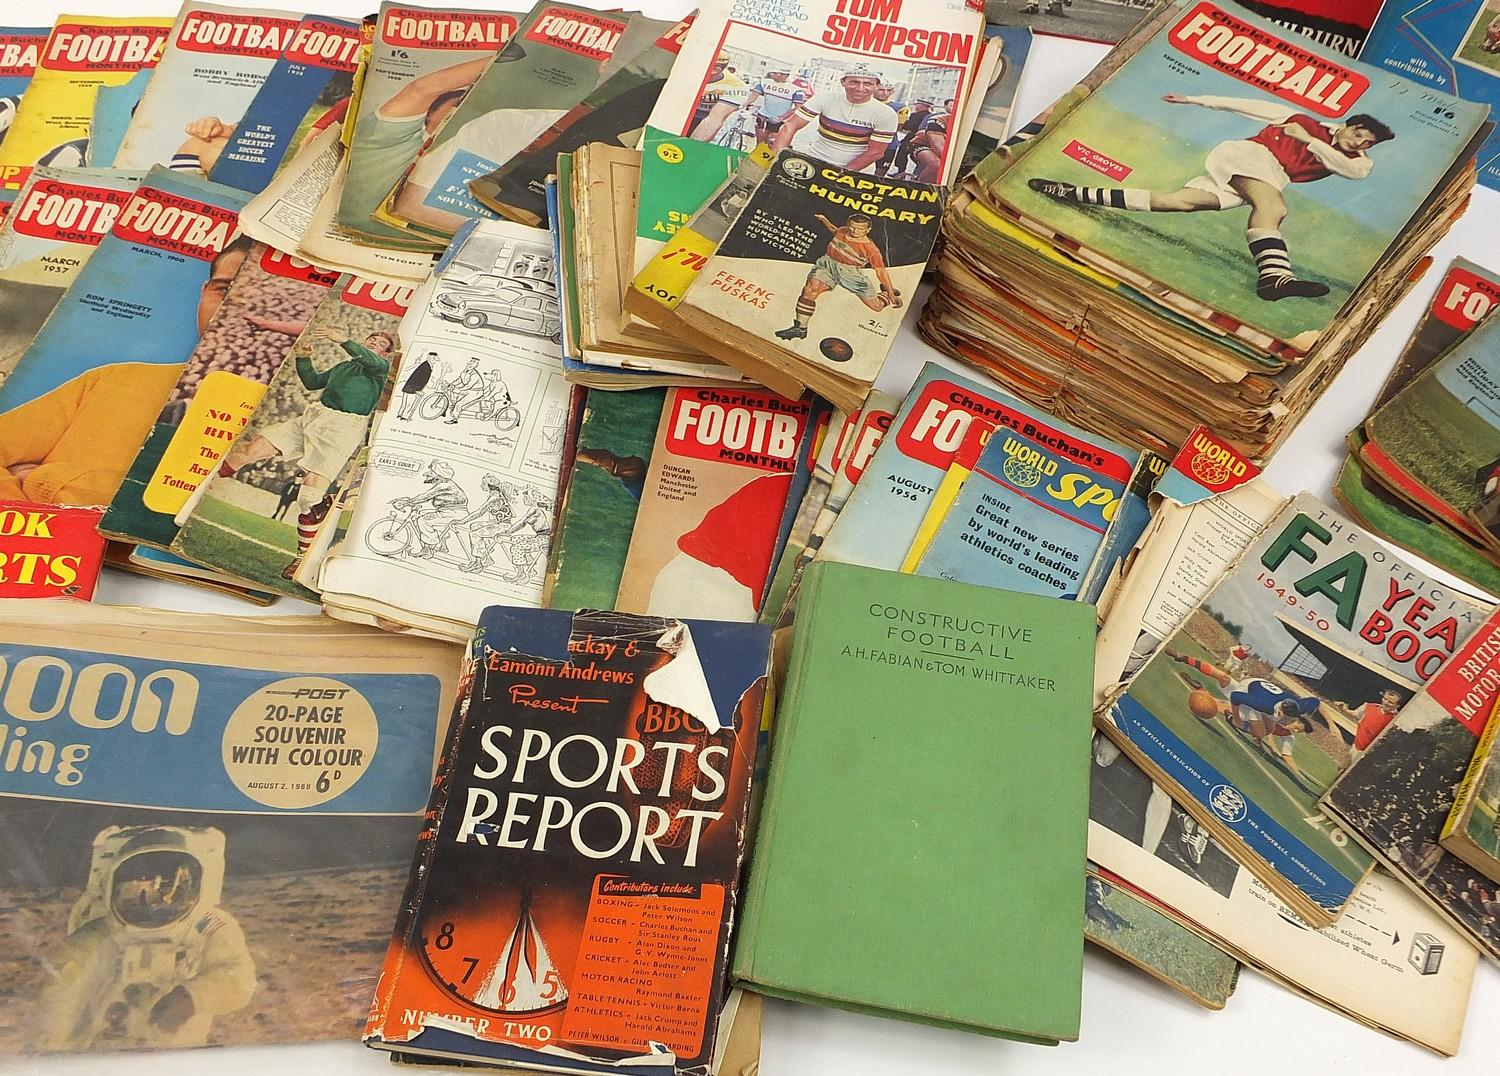 Collection of vintage and later football related books and magazines including The Real Madrid and - Image 5 of 7